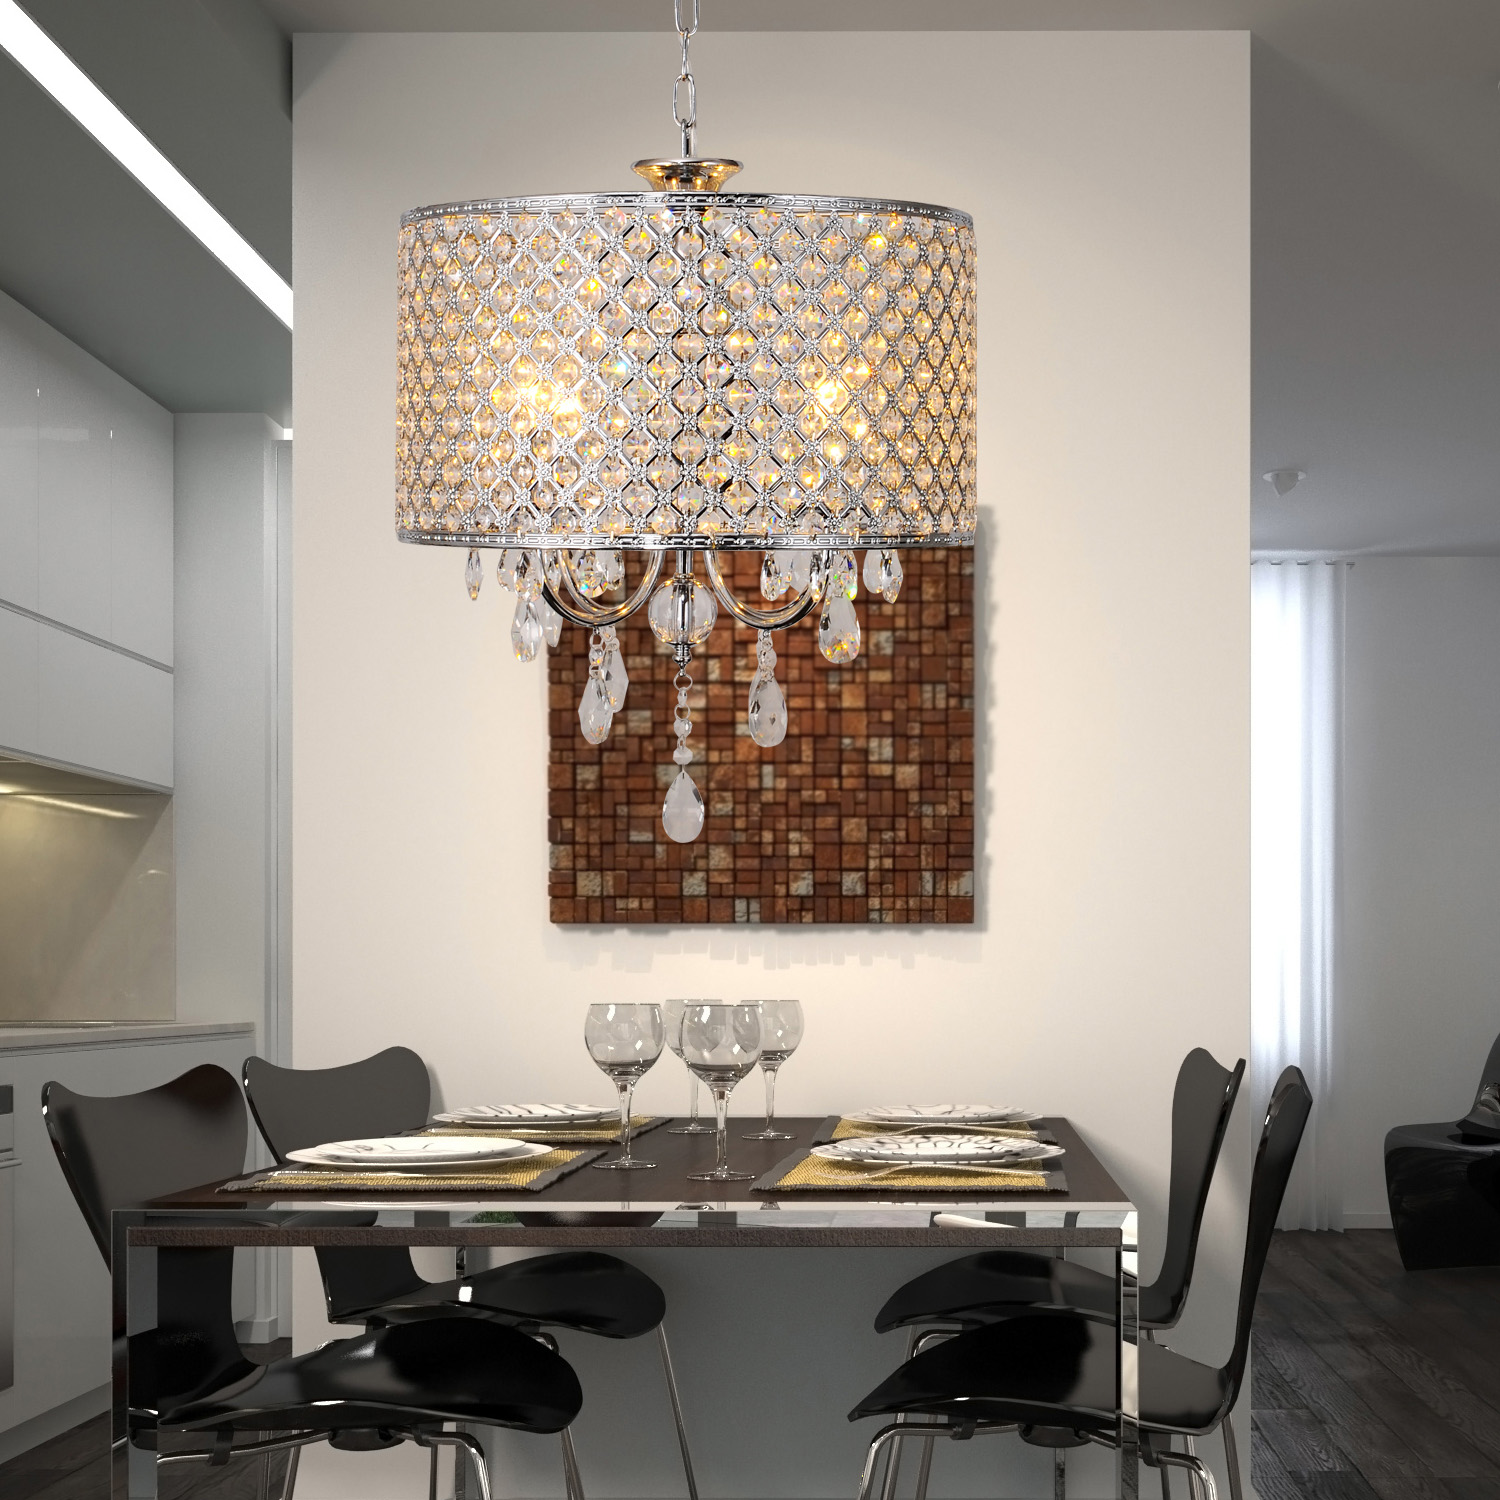 Modern new drum crystal chandelier with 4 lights light for dining room bedroom ebay - Dining room crystal chandelier lighting ...